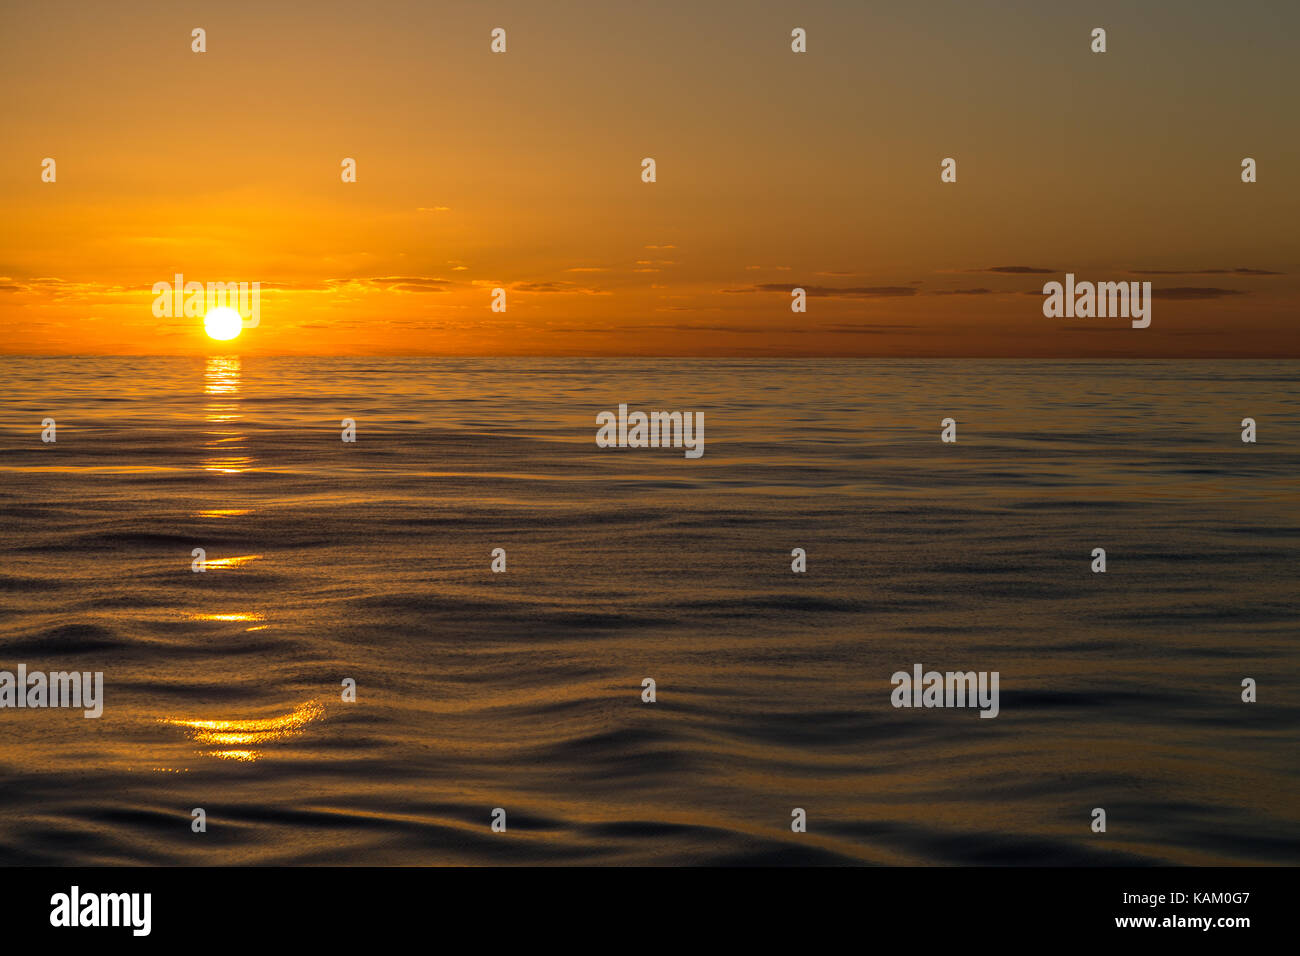 Sunset on the Bay of Biscay Stock Photo